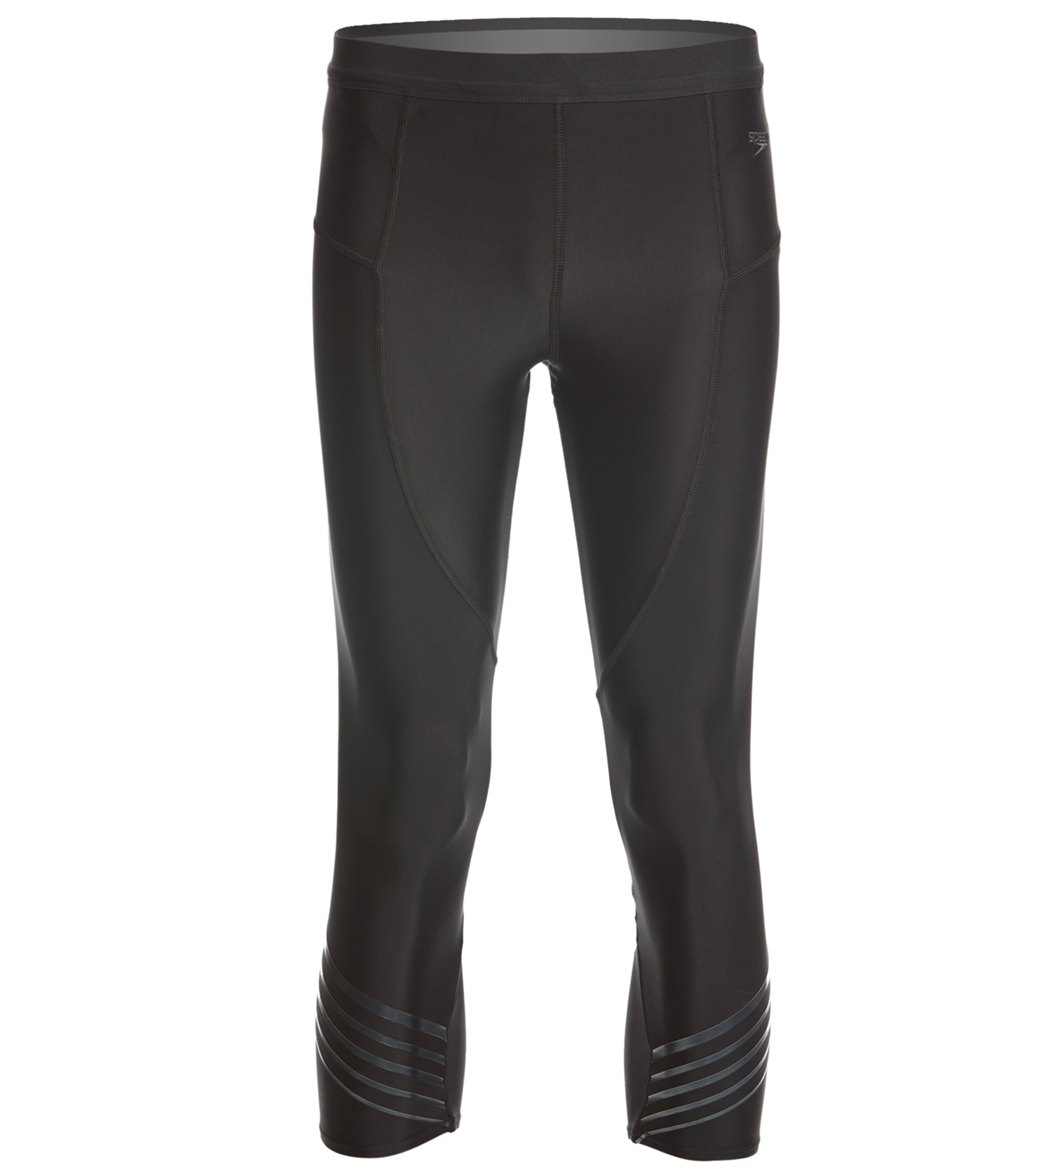 29201fab3f Speedo Mercury Men's Compression Legging at SwimOutlet.com - Free Shipping